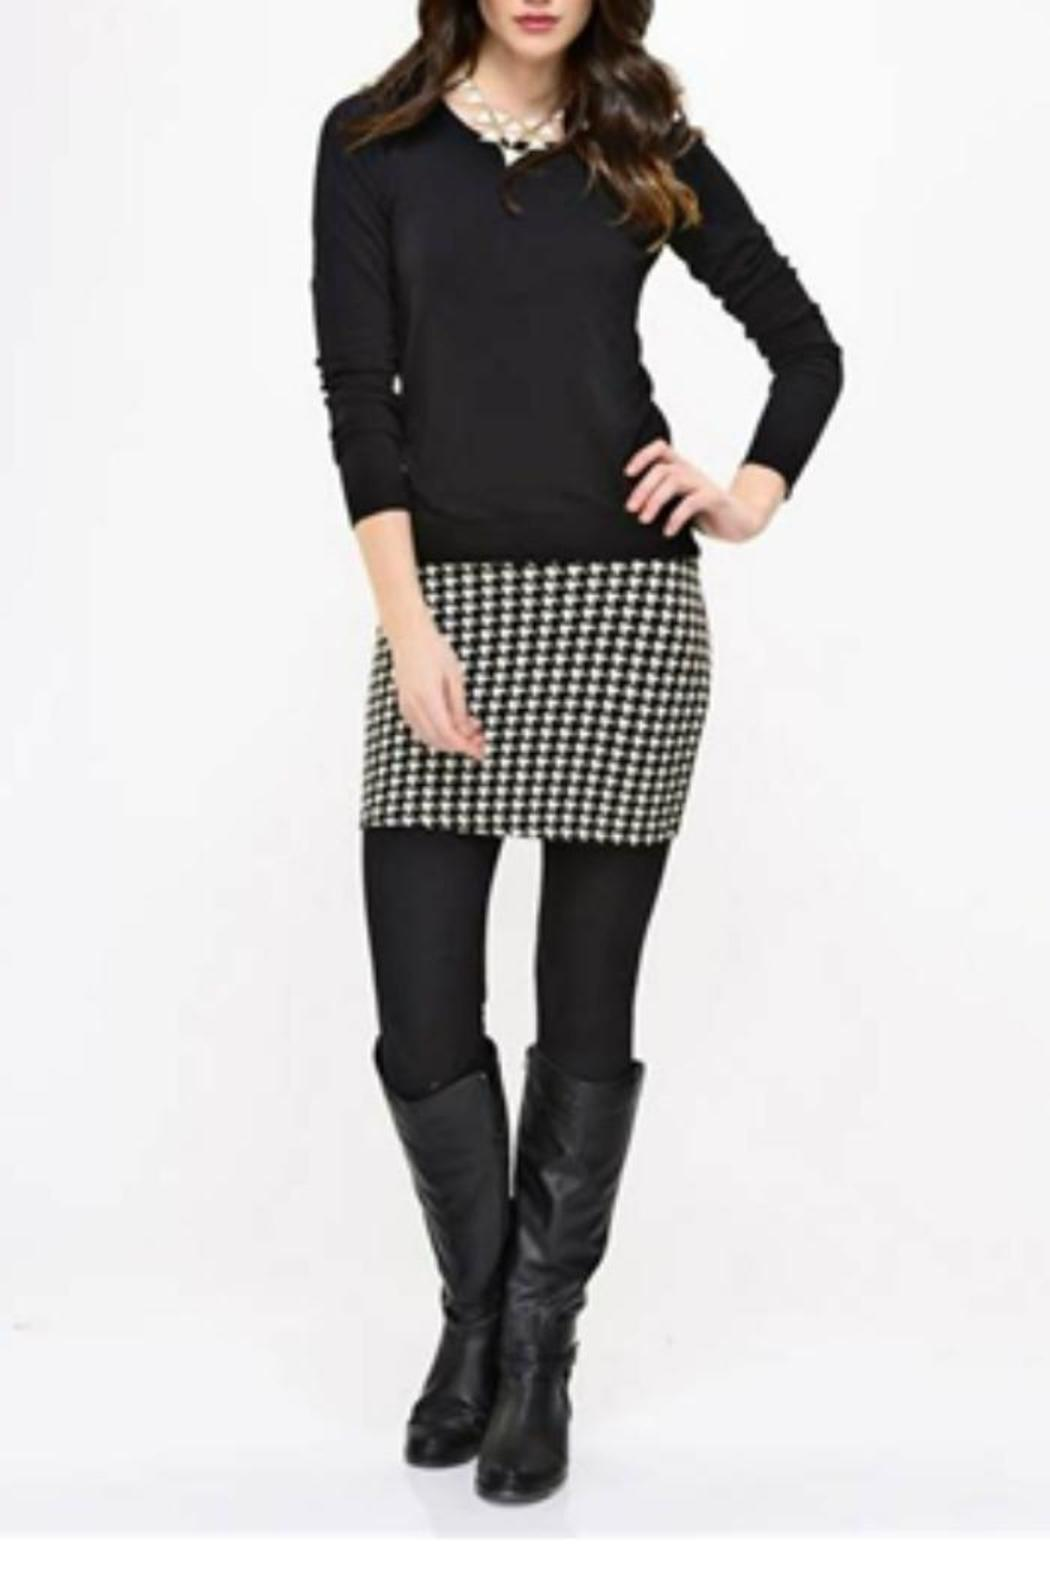 Charlie Paige Houndstooth Skirt Leggings From Minnesota By Ossell S Shoptiques